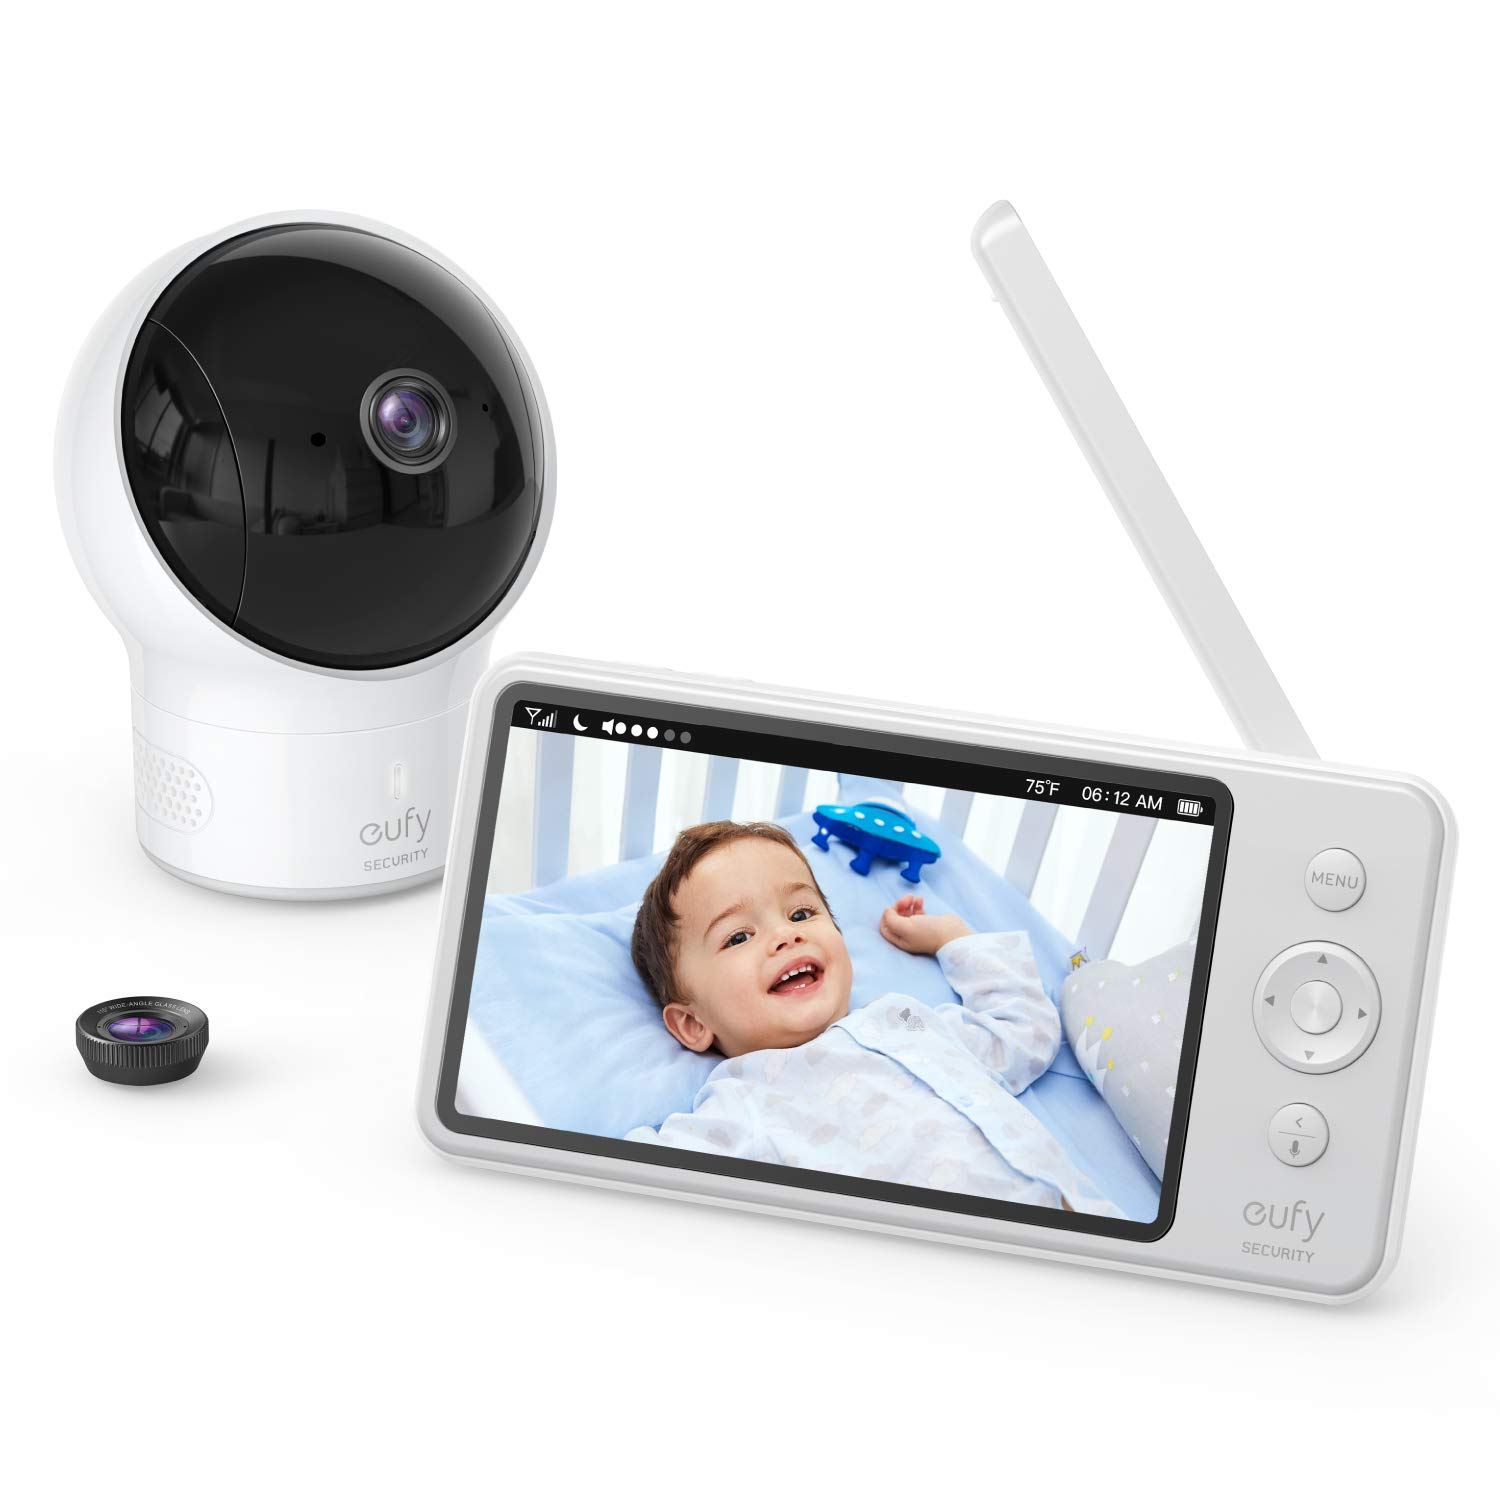 "eufy Security SpaceView Baby Monitor, 5"" LCD Display, 720p HD Resolution, 460 Ft Range, Wide-Angle Lens Included, Night Vision, 2-Way Audio, 2900mAh Rechargeable Battery, Smart Alert 5"" LCD Display AK-T83001D1"